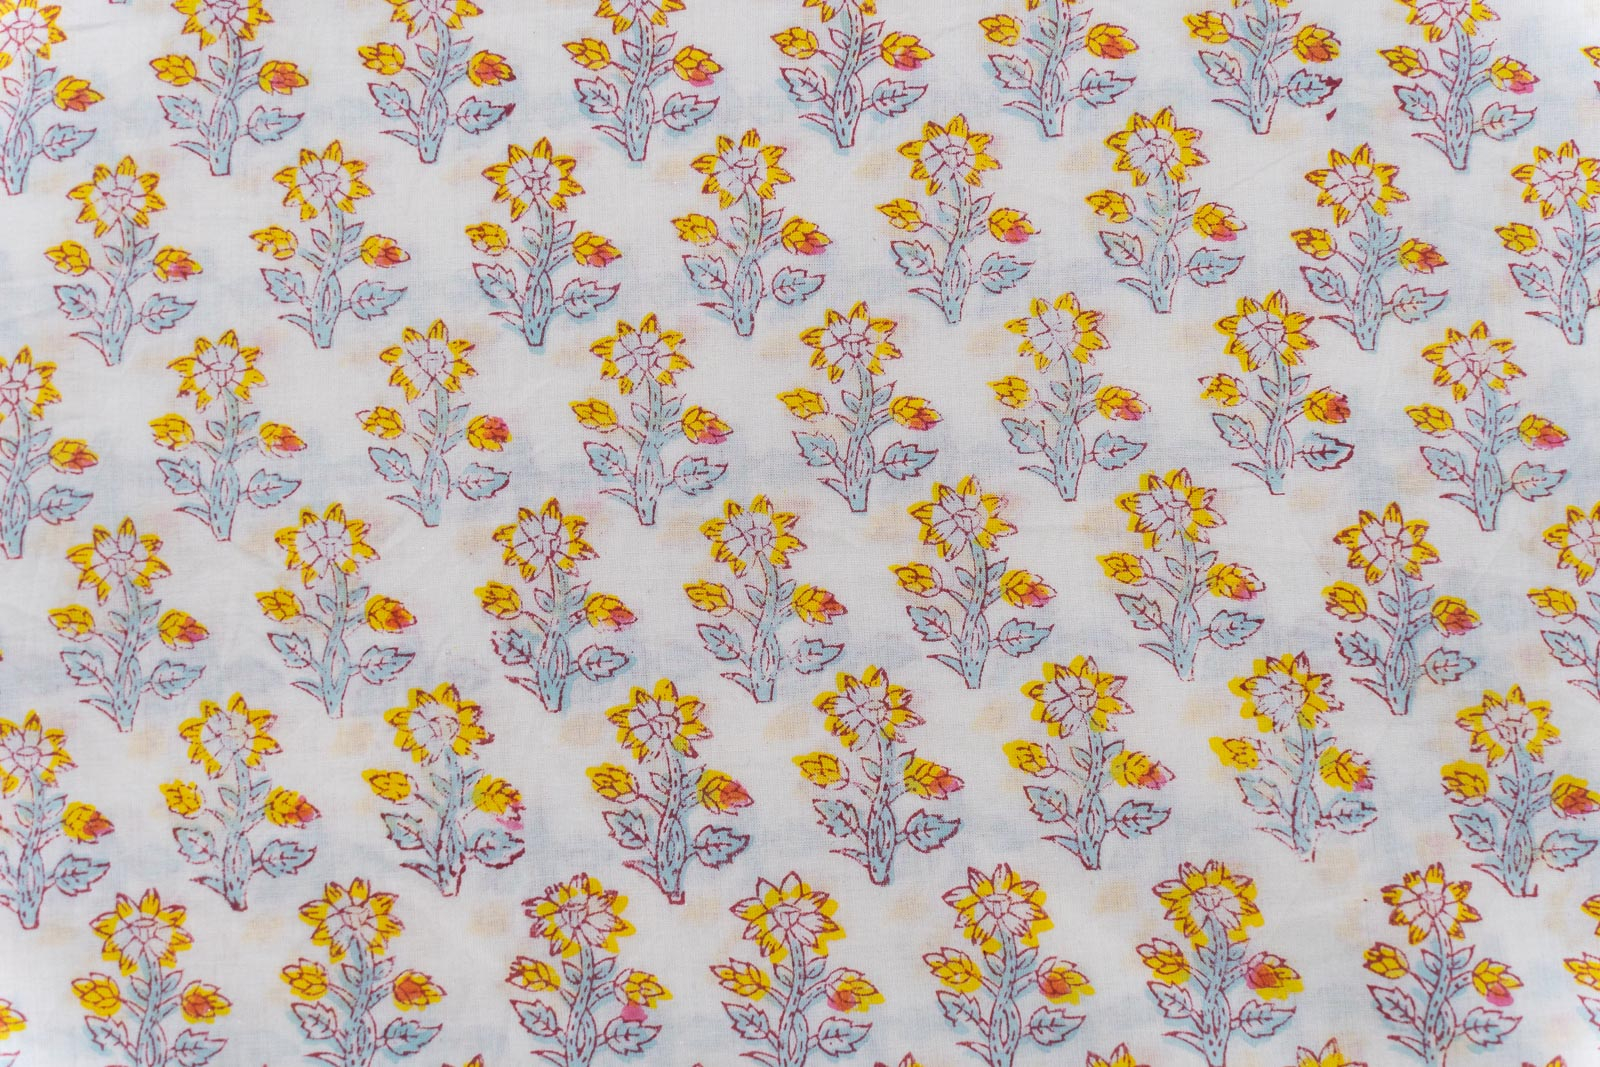 Floral Hand Block Printed Cotton Fabric